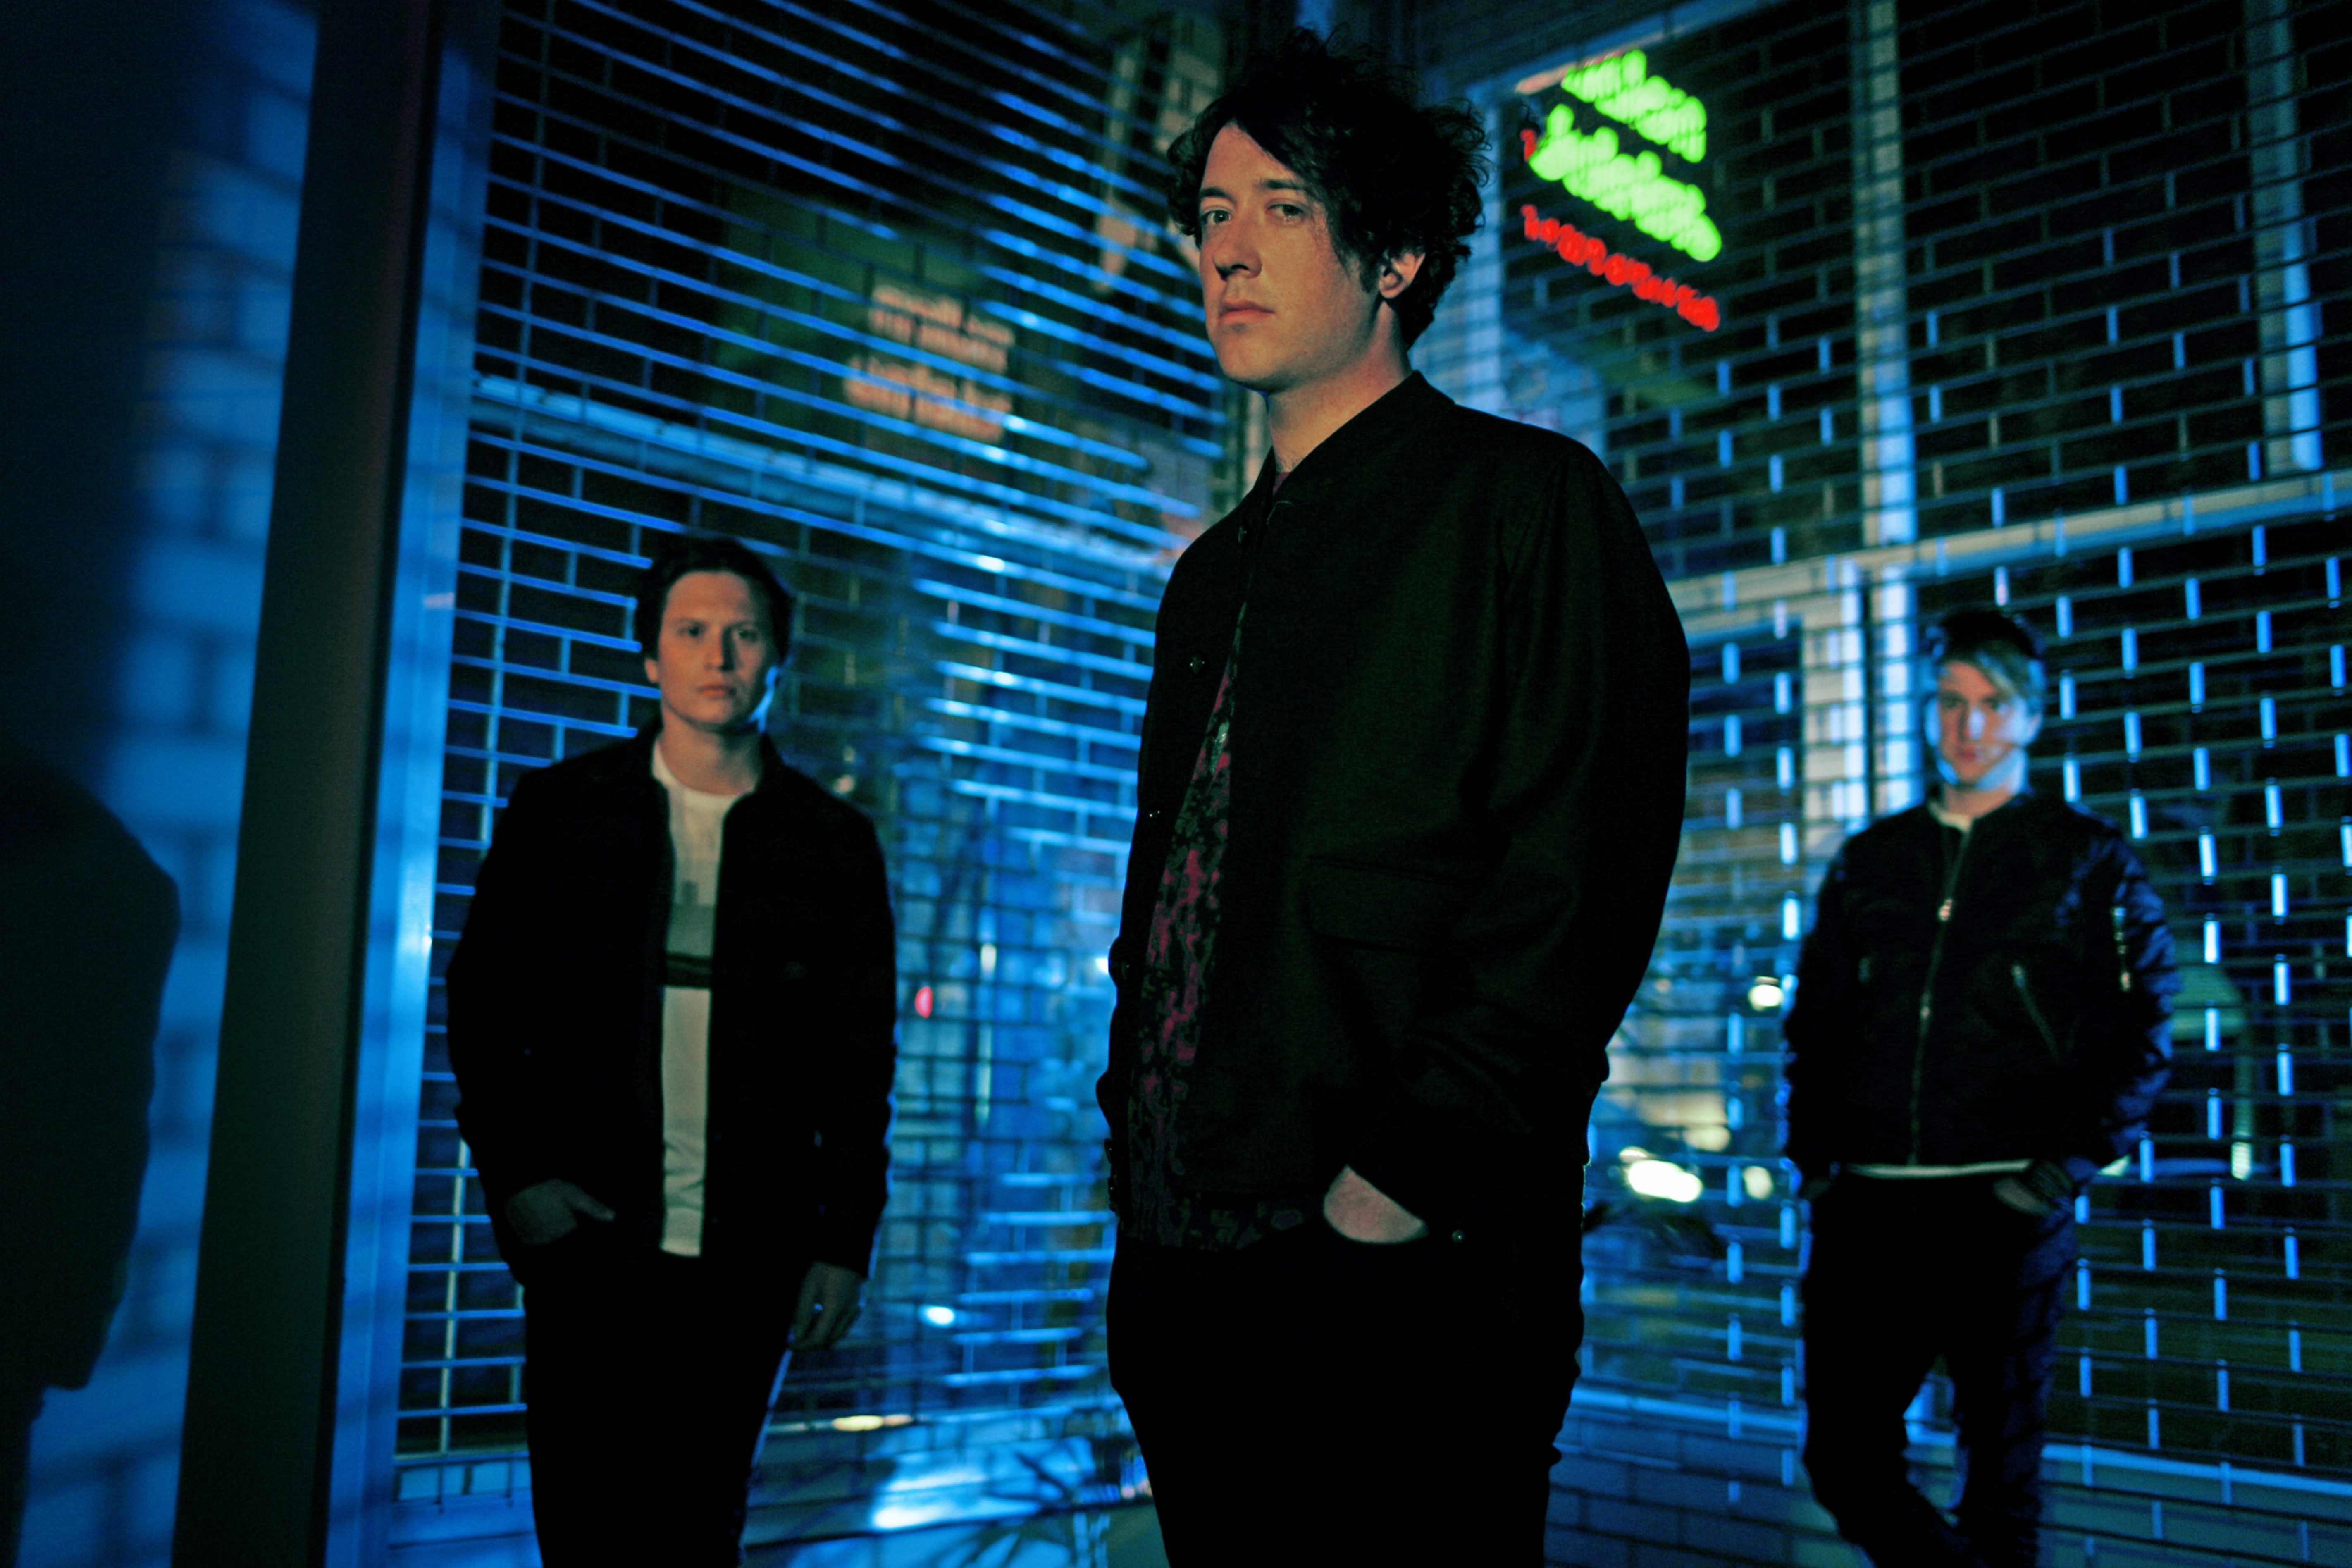 The Wombats will perform at 7 p.m. Monday in the Waiting Room on Delaware Avenue.